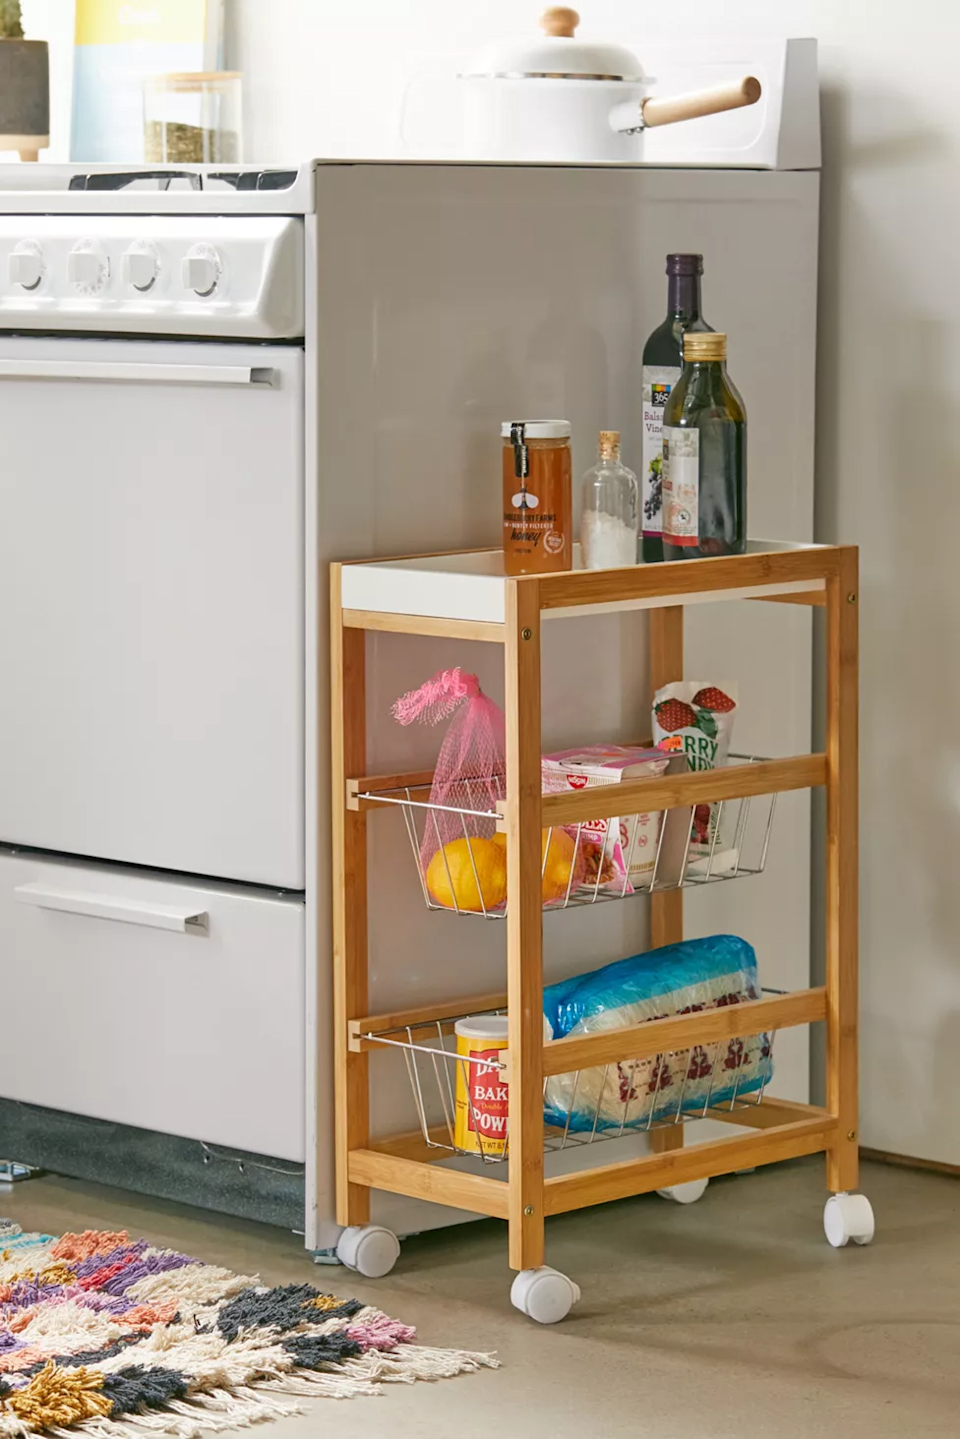 "<h3><a href=""https://www.urbanoutfitters.com/shop/barkley-kitchen-cart"" rel=""nofollow noopener"" target=""_blank"" data-ylk=""slk:Urban Outfitters Barkley Kitchen Cart"" class=""link rapid-noclick-resp"">Urban Outfitters Barkley Kitchen Cart</a></h3><br><strong>When you don't have a ""real"" kitchen</strong>: Tiny apartments usually don't come complete with separate kitchen spaces — or any kitchen space at all — which is where a multi-storage-capable unit comes in handy.<br><br><strong>Urban Outfitters</strong> Barkley Kitchen Cart, $, available at <a href=""https://go.skimresources.com/?id=30283X879131&url=https%3A%2F%2Fwww.urbanoutfitters.com%2Fshop%2Fbarkley-kitchen-cart%3F"" rel=""nofollow noopener"" target=""_blank"" data-ylk=""slk:Urban Outfitters"" class=""link rapid-noclick-resp"">Urban Outfitters</a>"